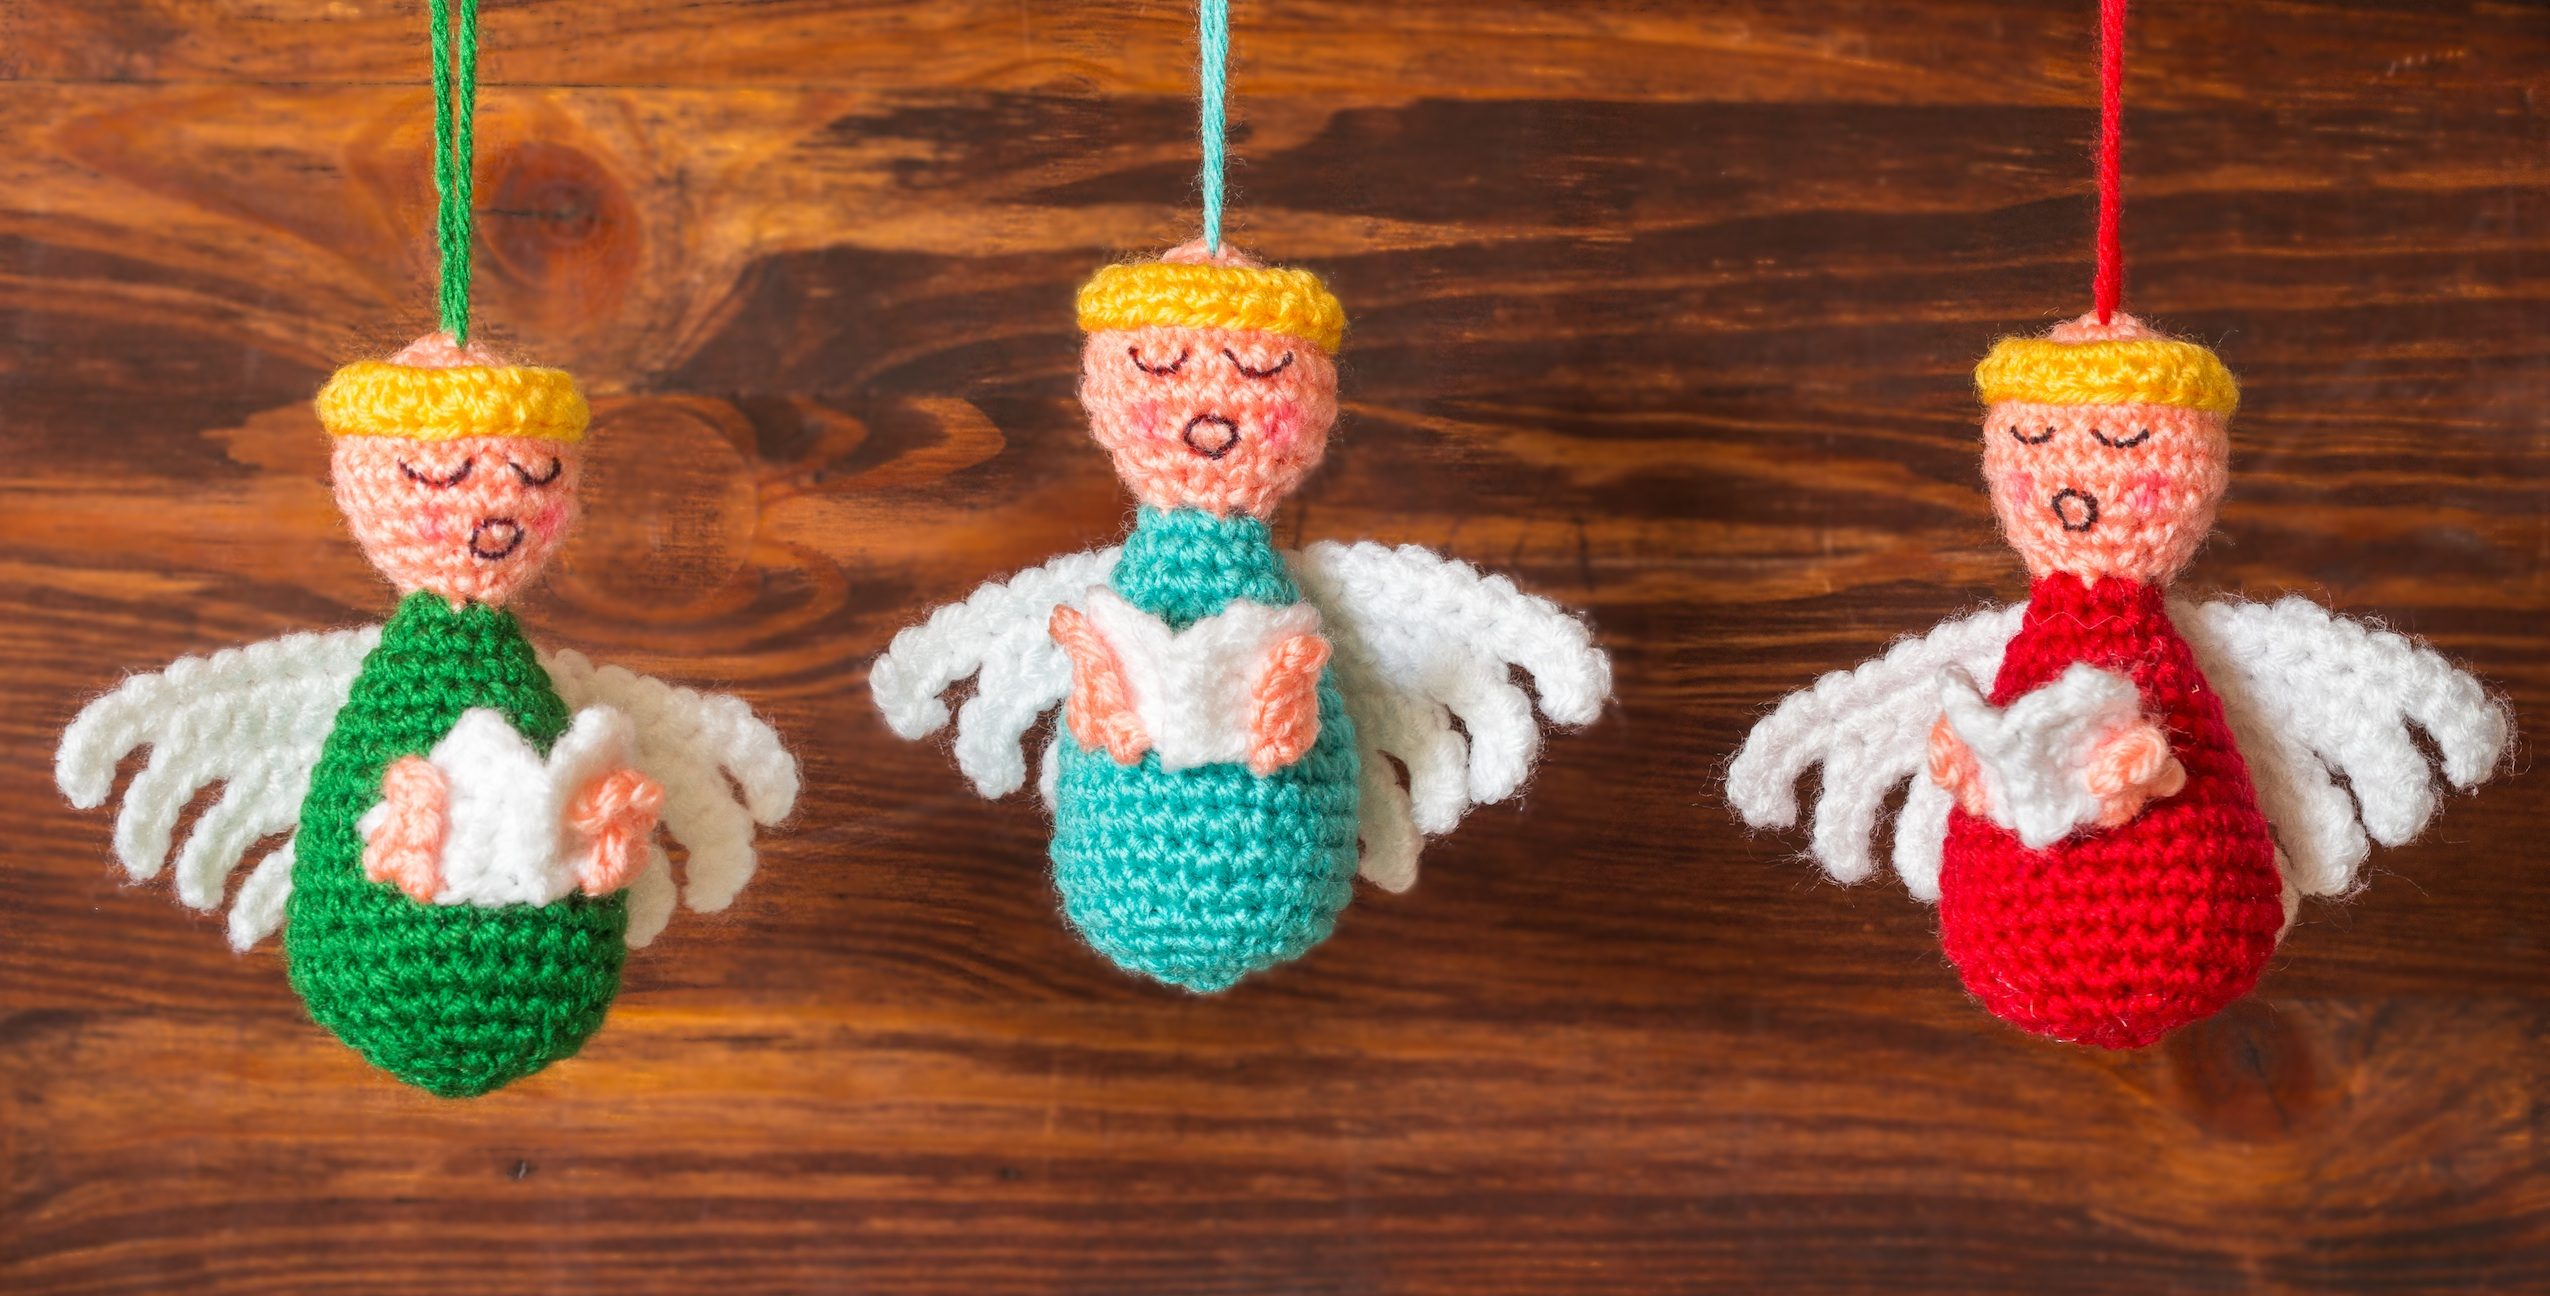 Crochet Ornaments : Crochet Angel Ornament Pattern Ornaments Crochet Pattern